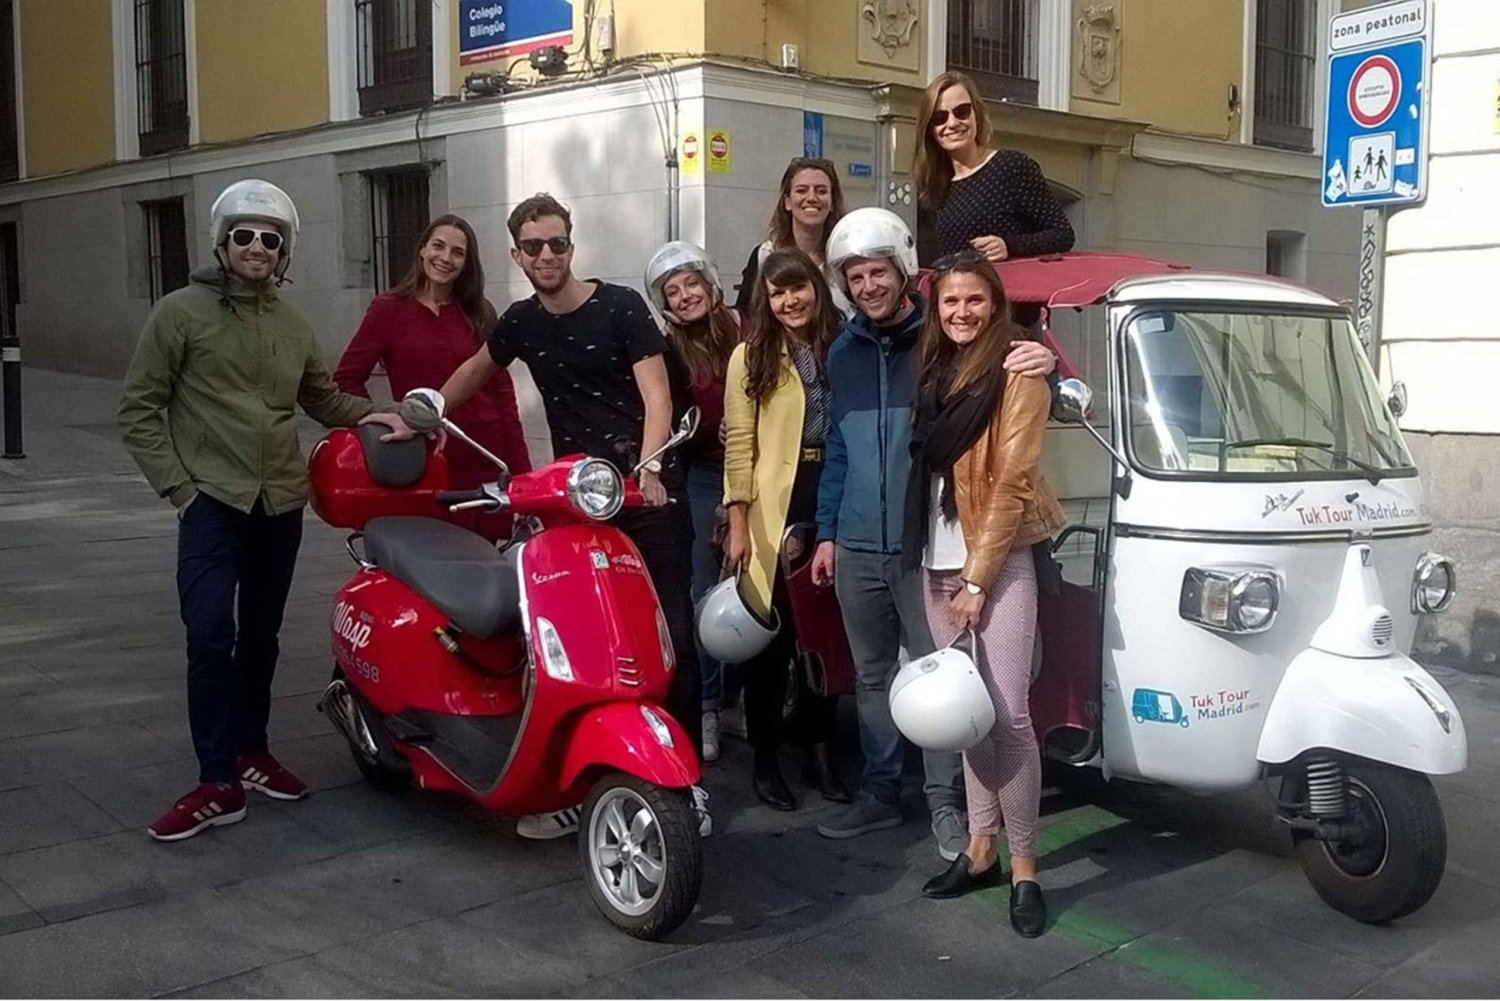 Vespa: City Center Tour (2 Hours - Up to 4 People)